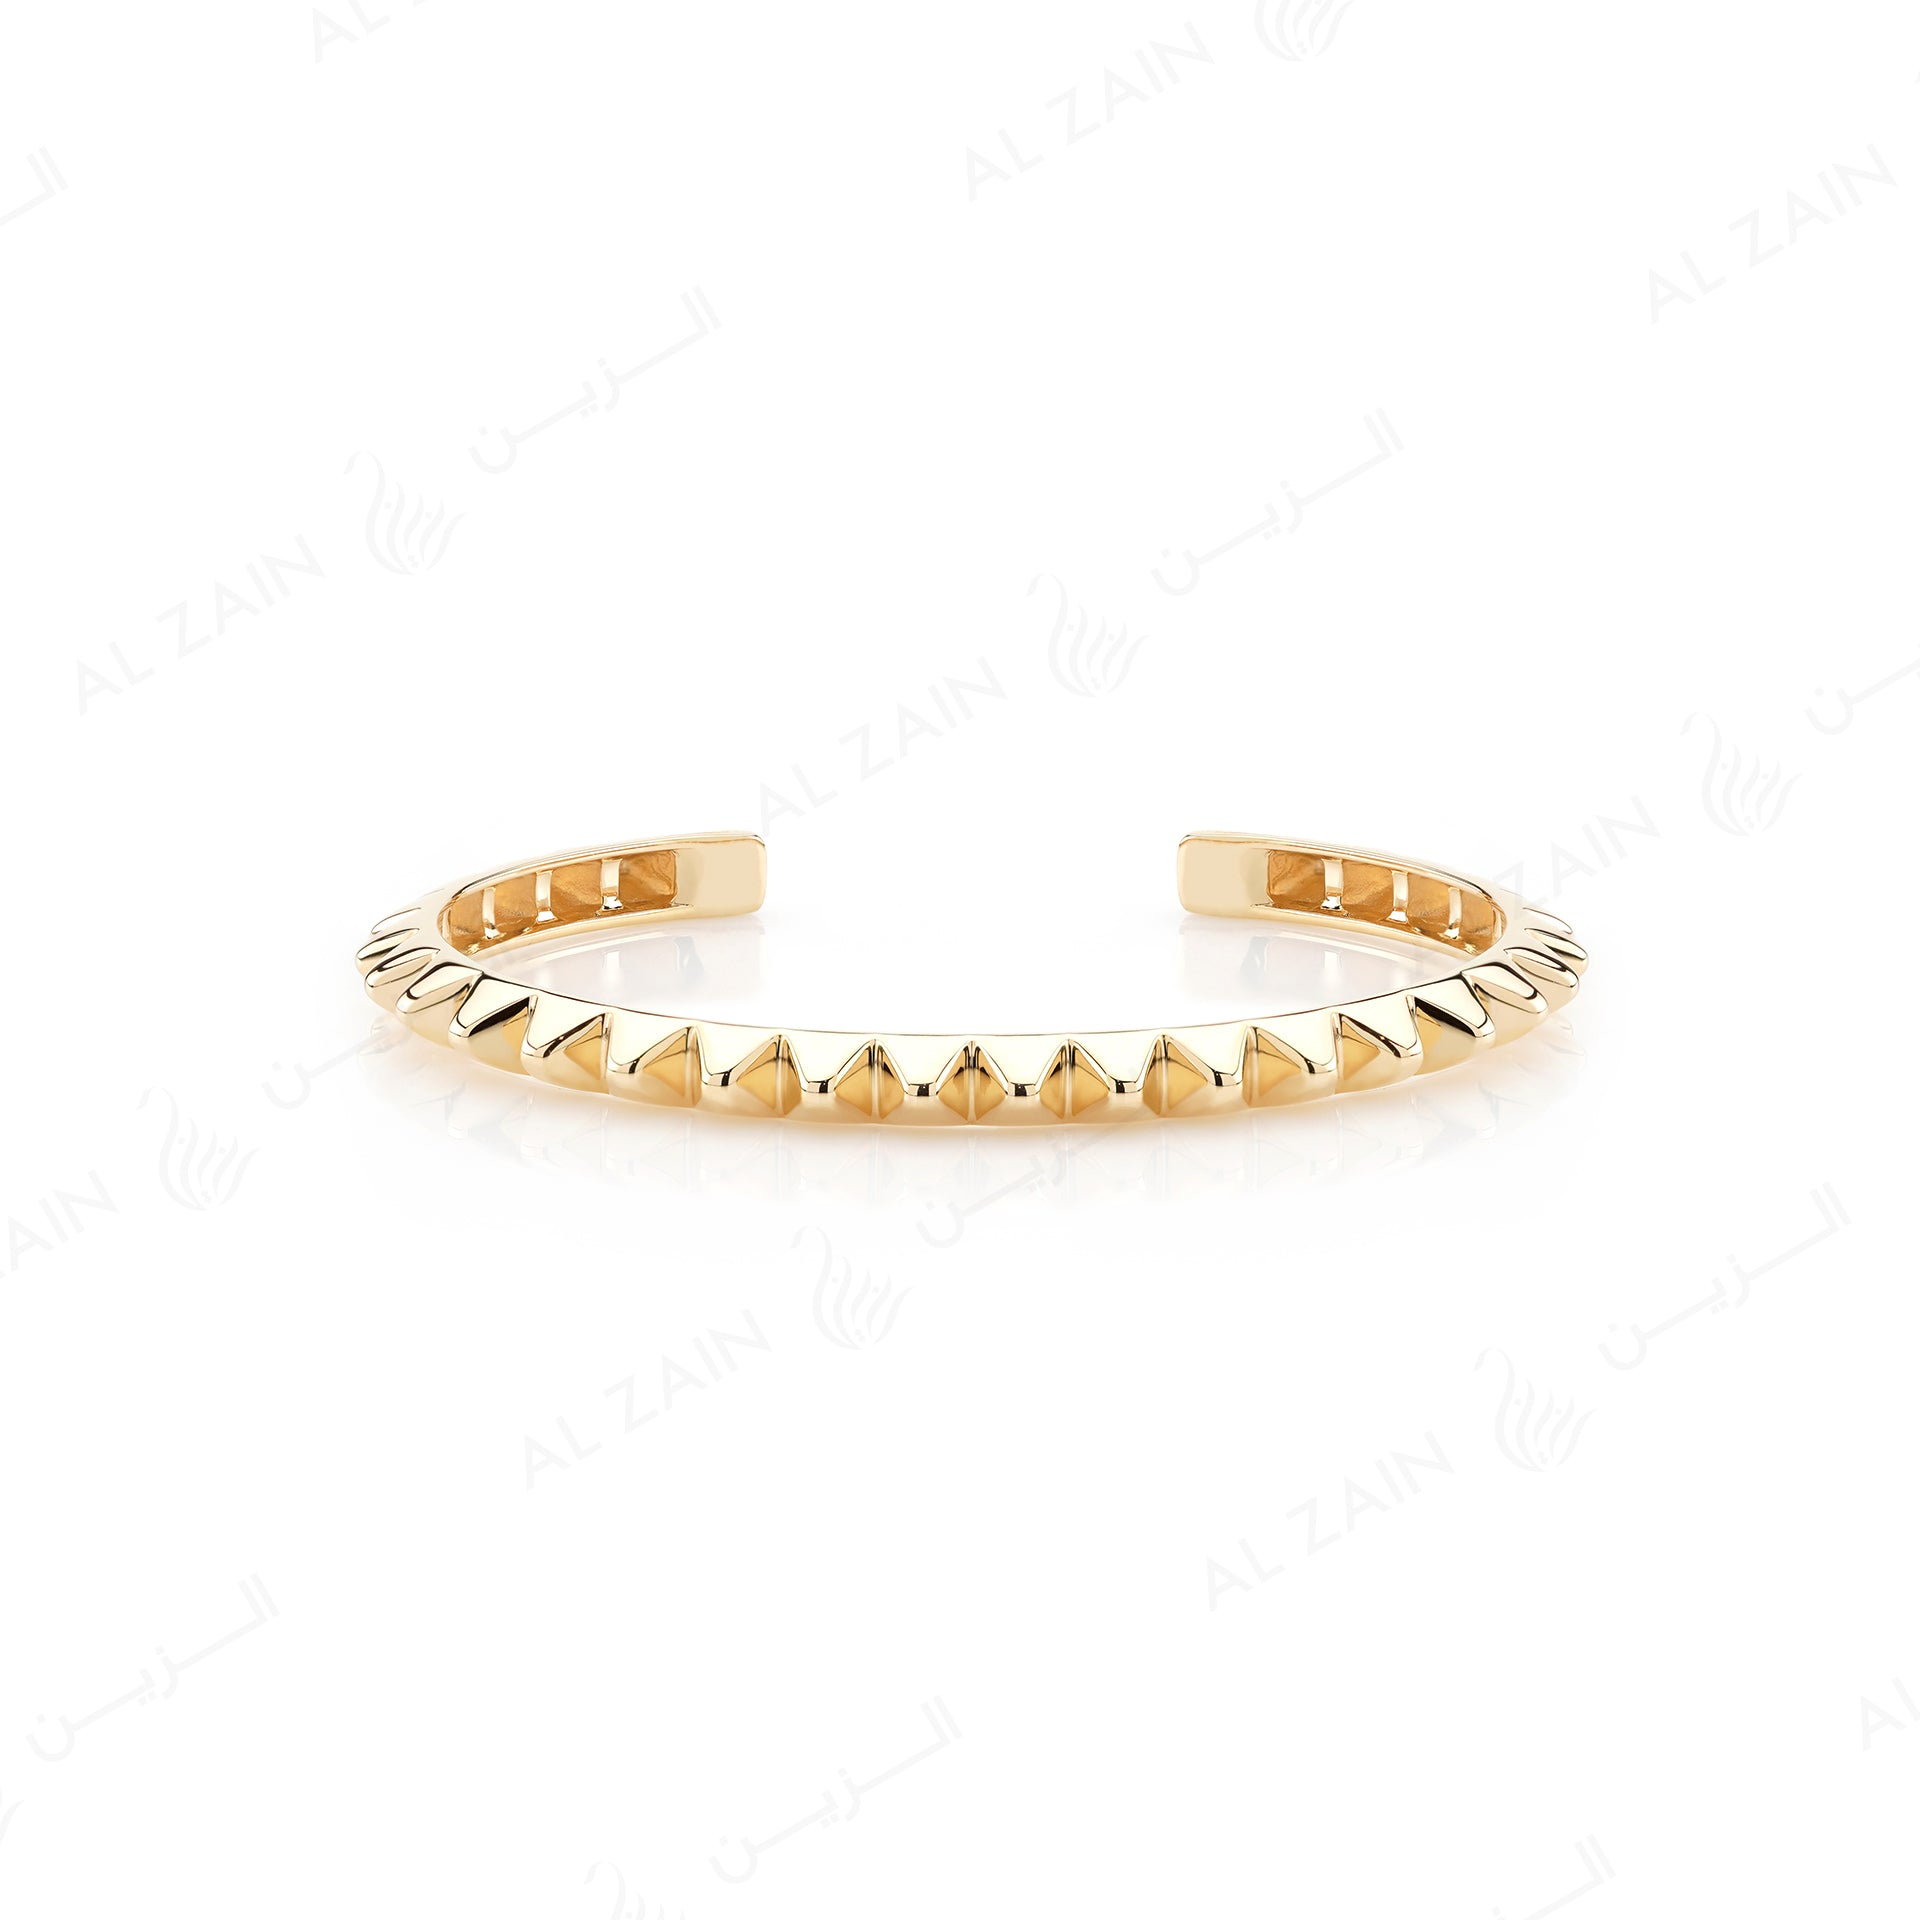 Hab El Hayl 2nd Edition Bangle in Yellow Gold with Diamonds on tip - Al Zain Jewellery